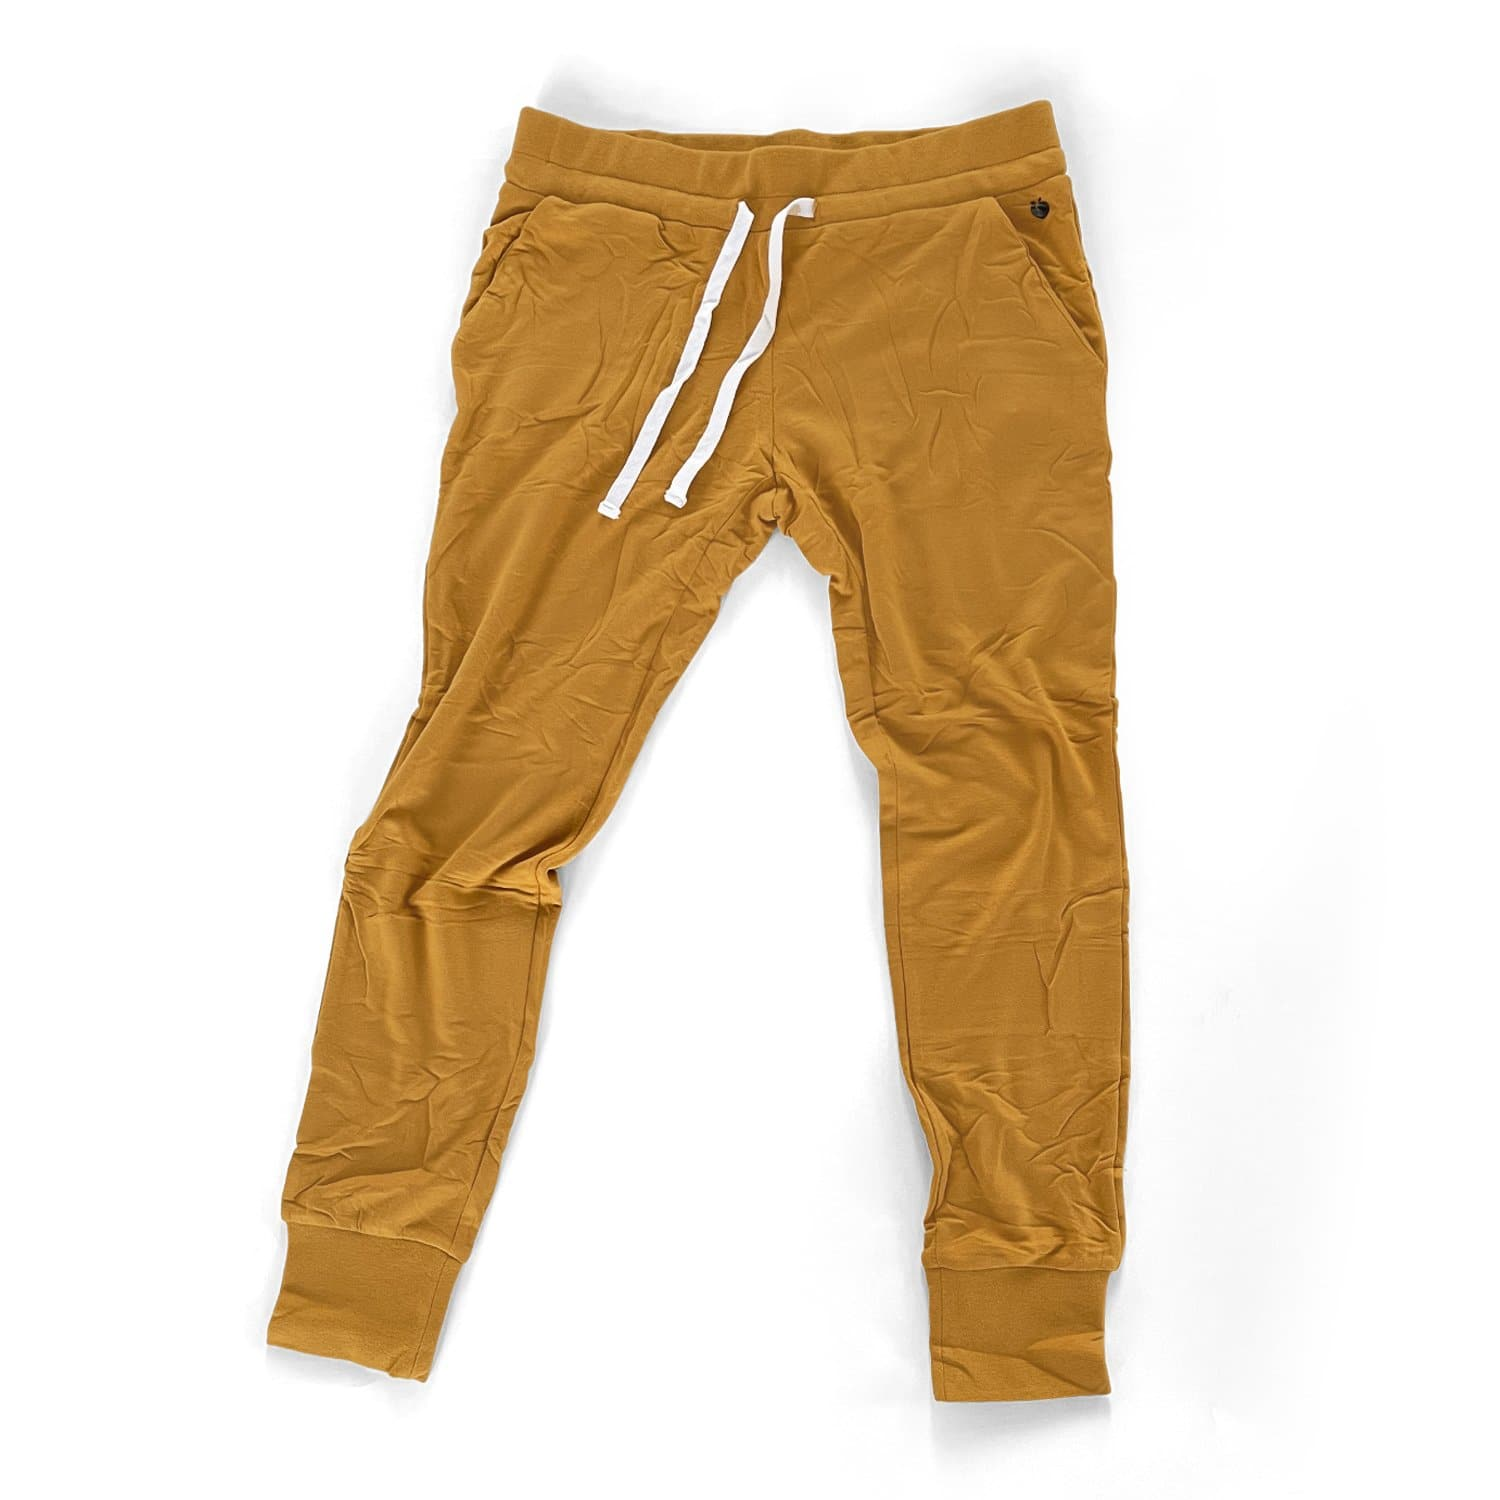 Women's EVERYDAY Ultra Soft Lounge Pant - Caramel